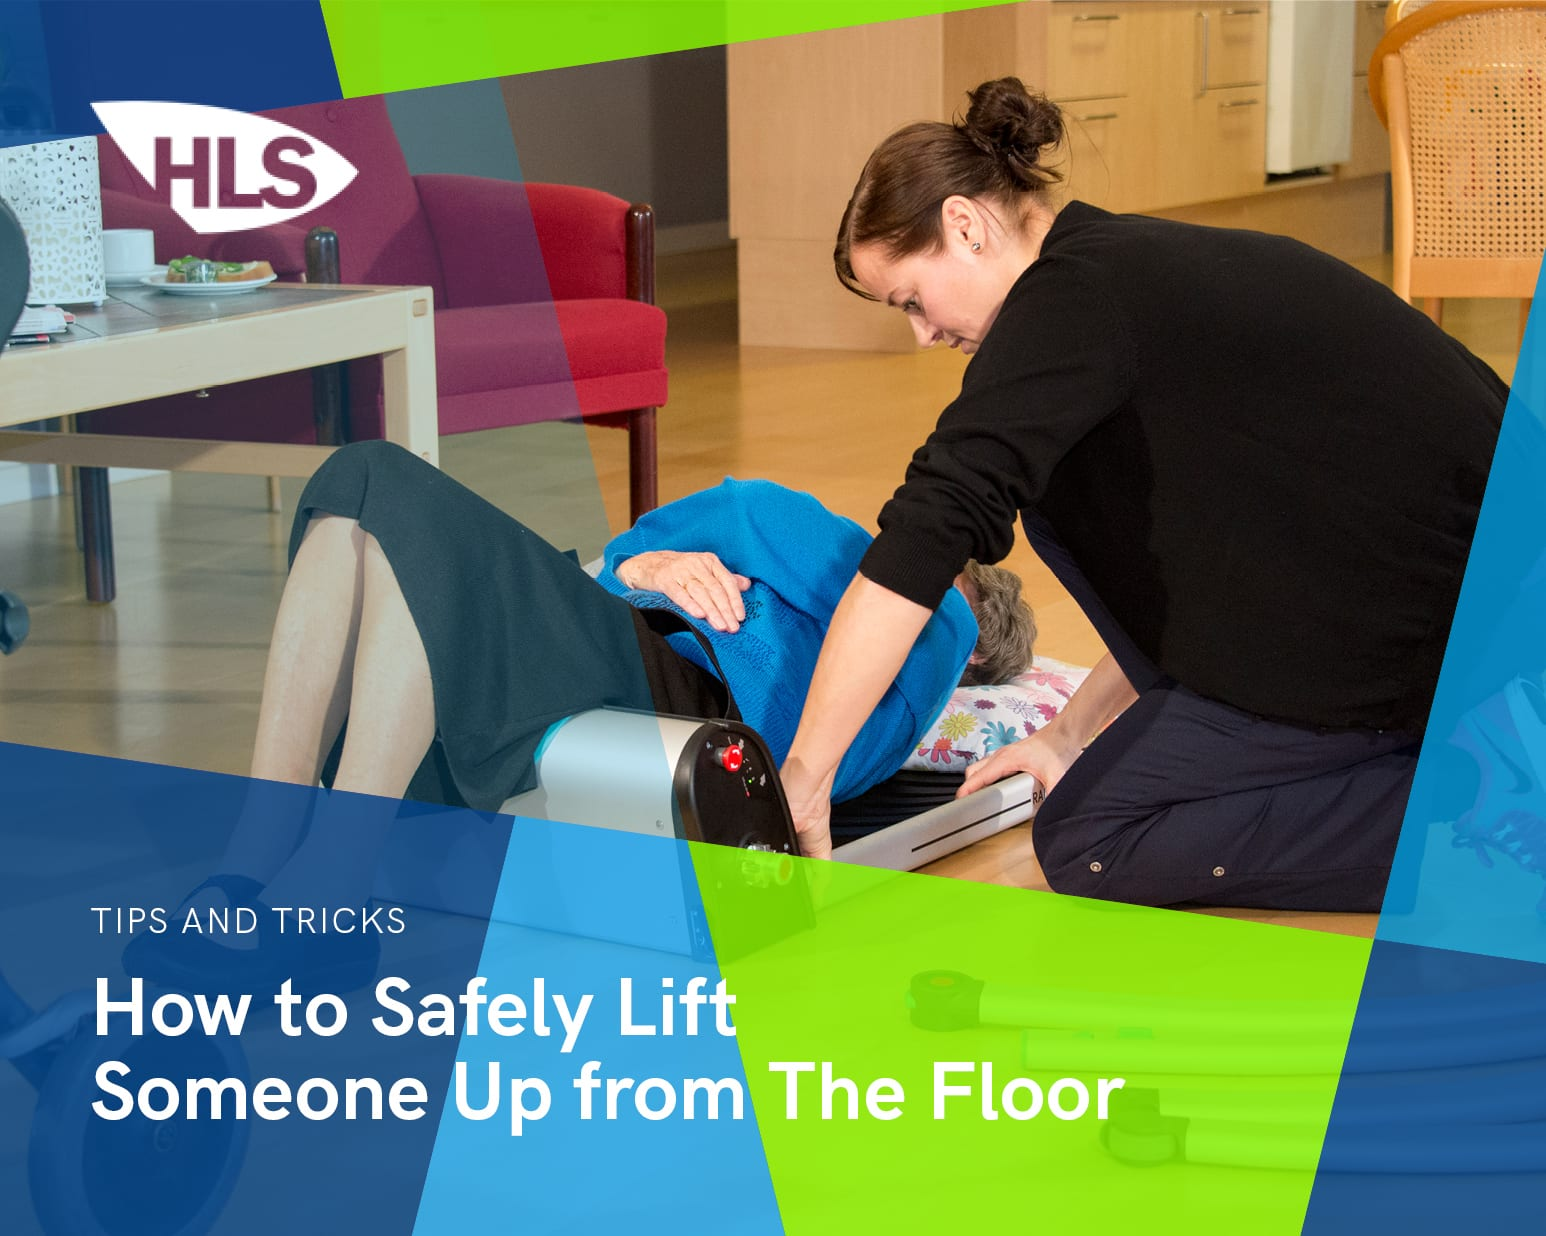 How to Safely Lift Someone Up from The Floor